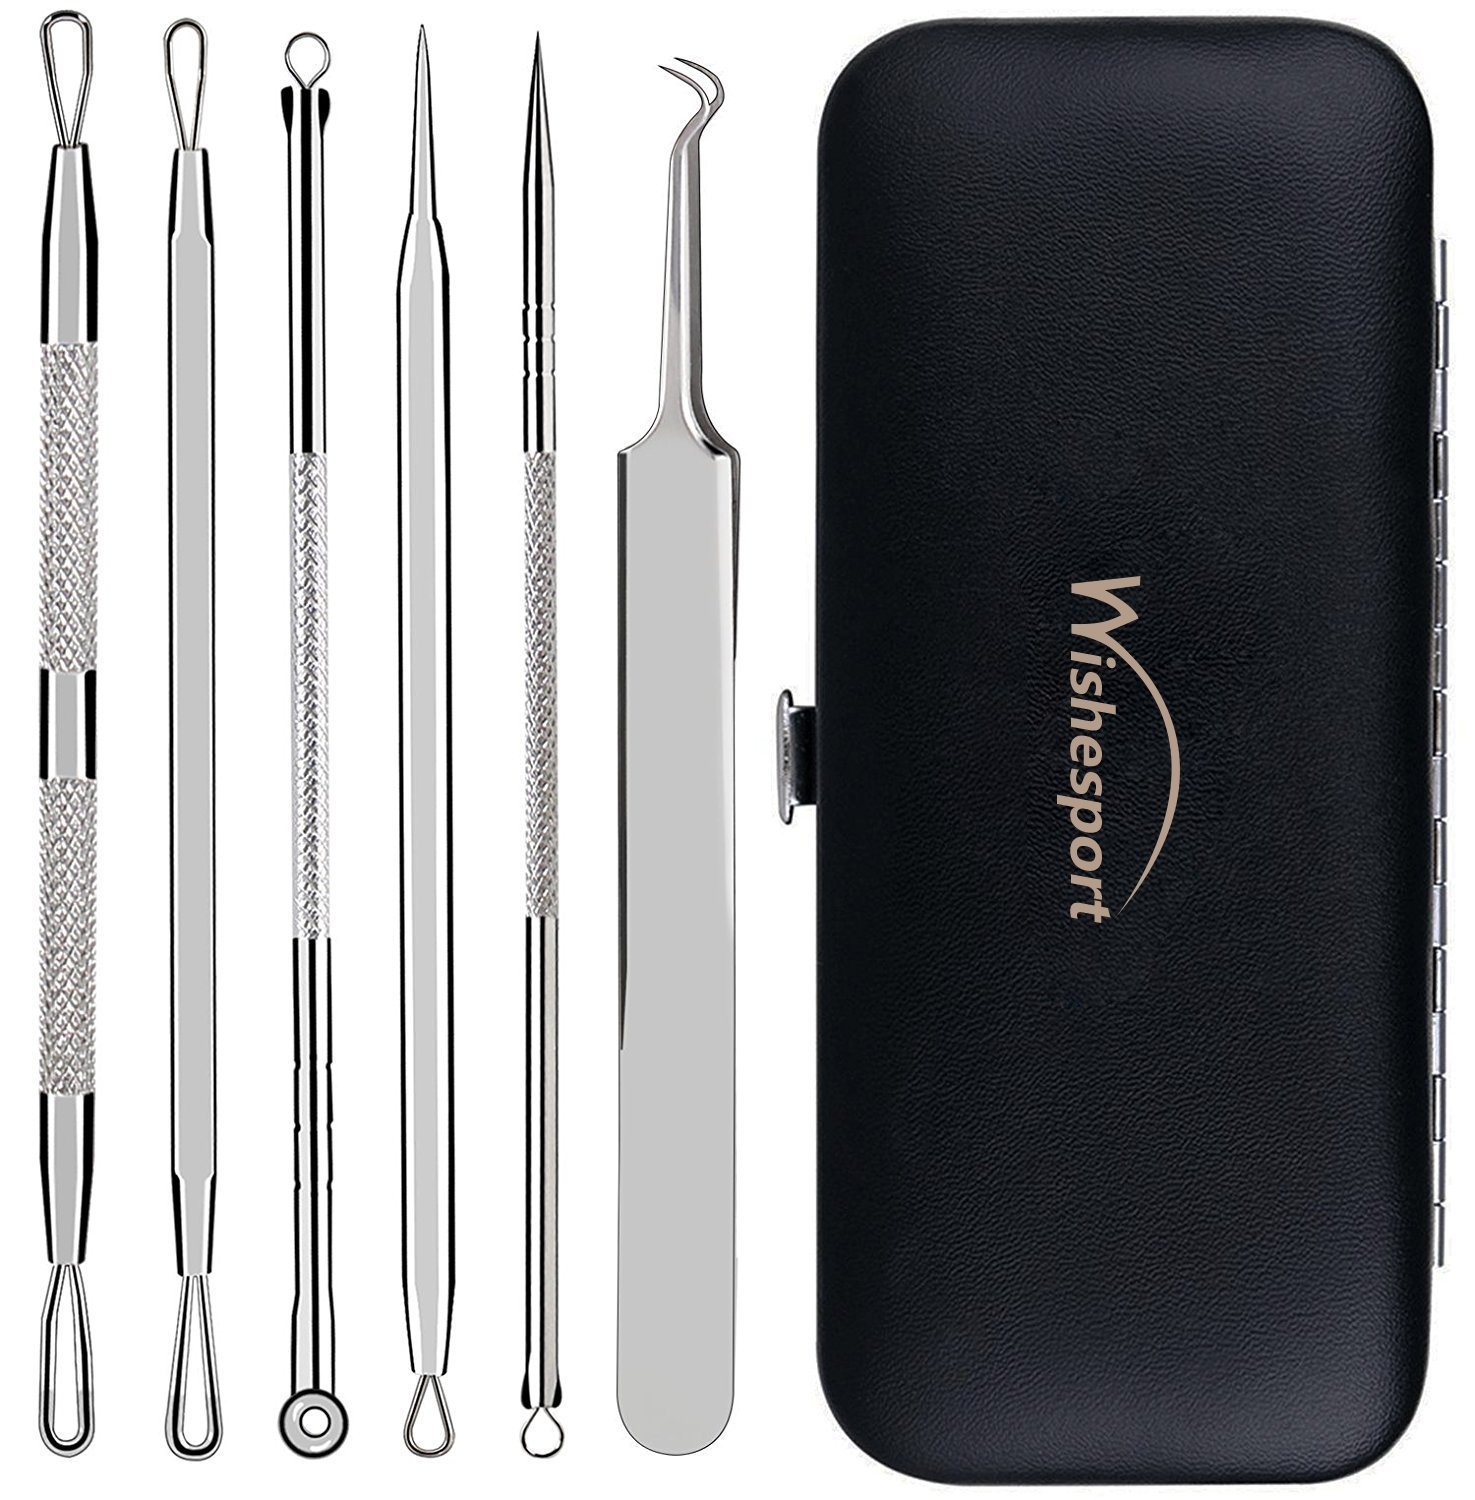 Wishesport Blackhead Remover,Pimple Comedone Extractor, Blackhead Removal tool, Blemish Acne Zit Remover Tweezer Kit,6 Piece Silver